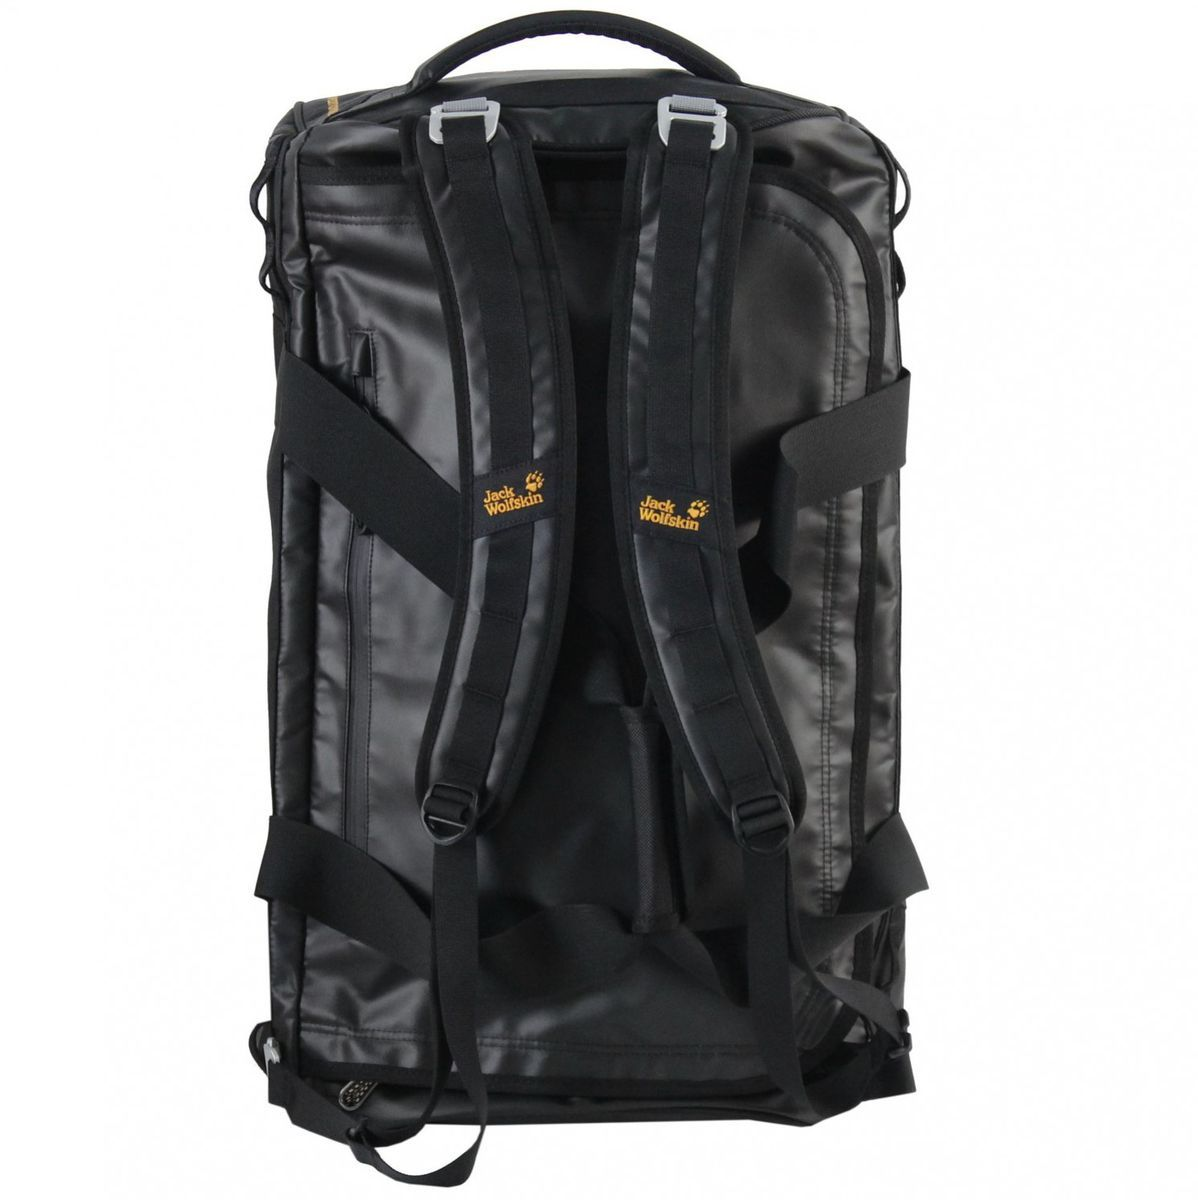 Баул JACK WOLFSKIN EXPEDITION TRUNK 130-1